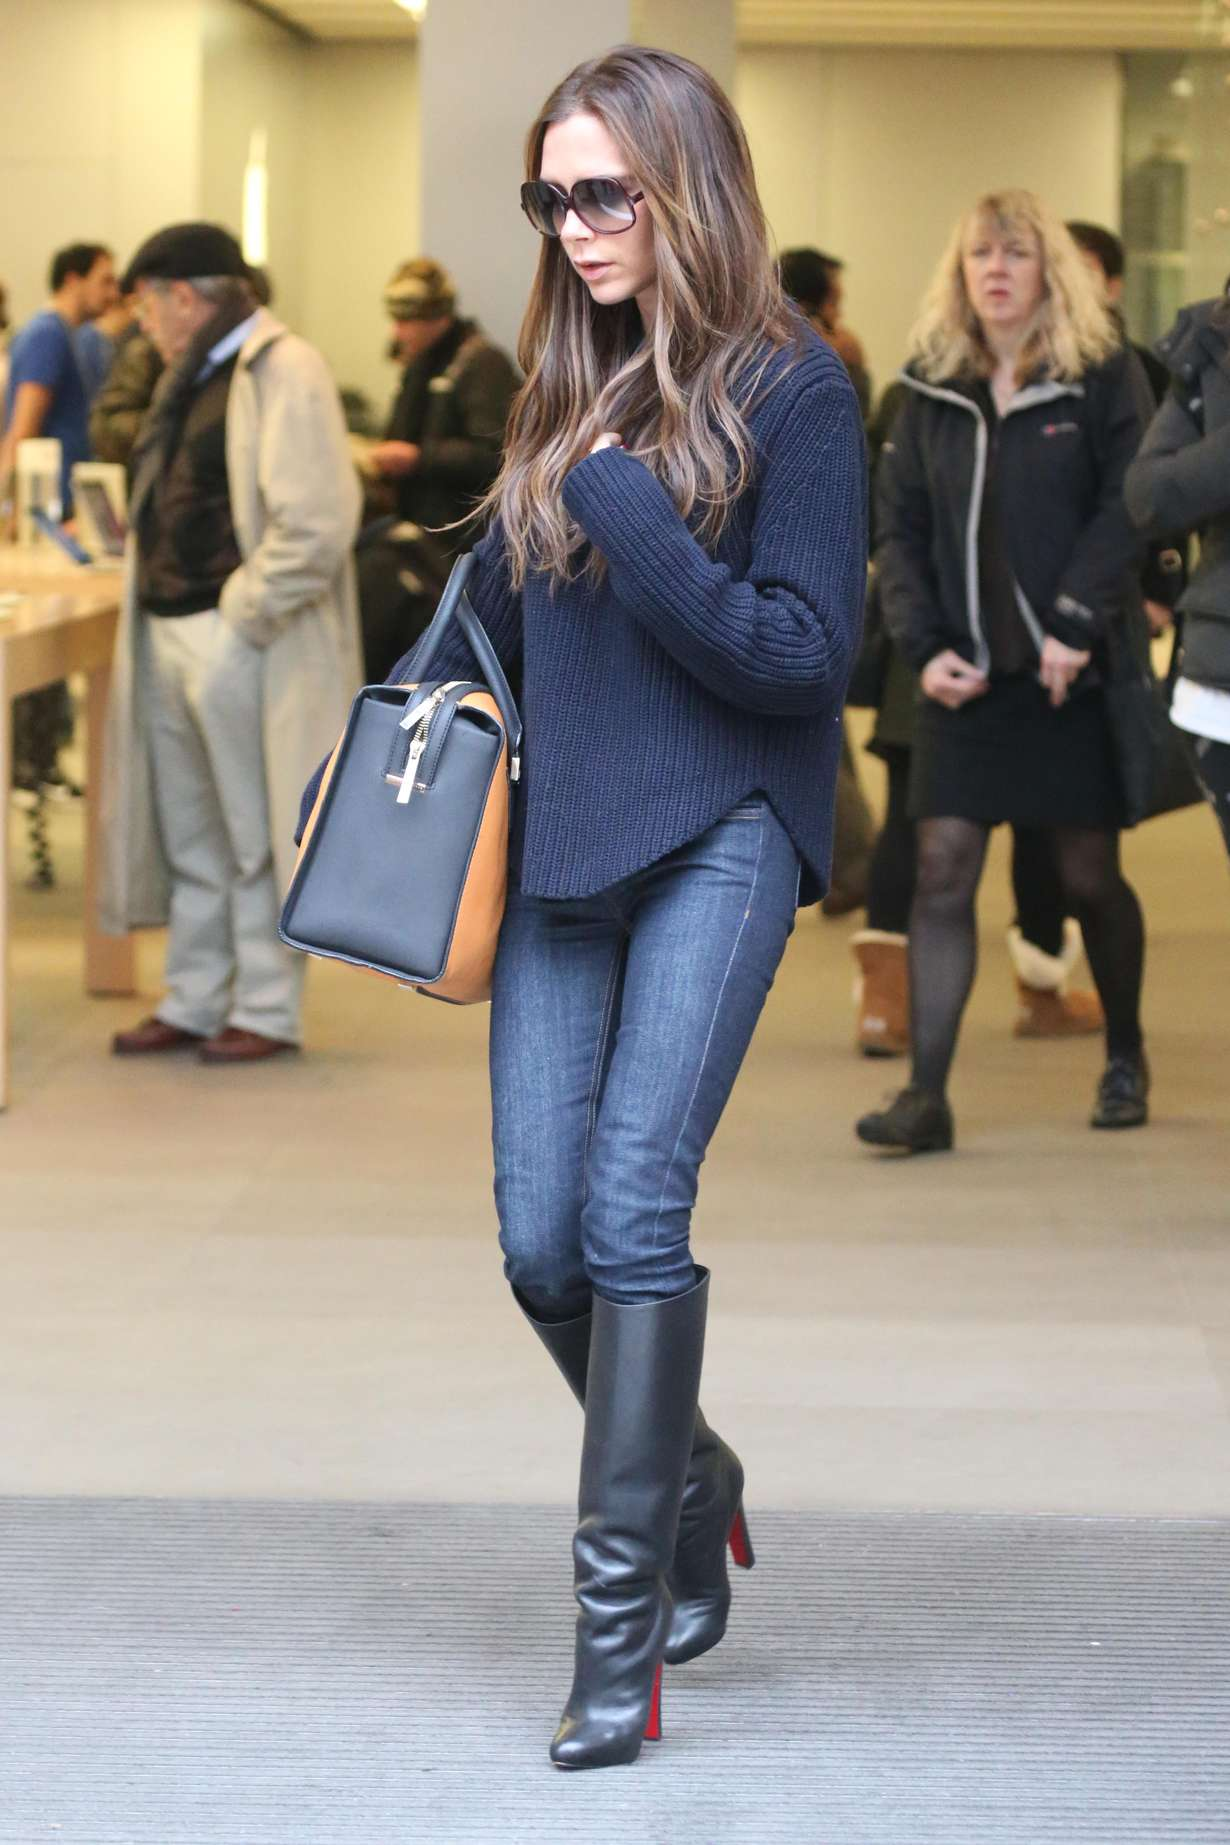 victoria beckham in jeans and boots 12 gotceleb. Black Bedroom Furniture Sets. Home Design Ideas